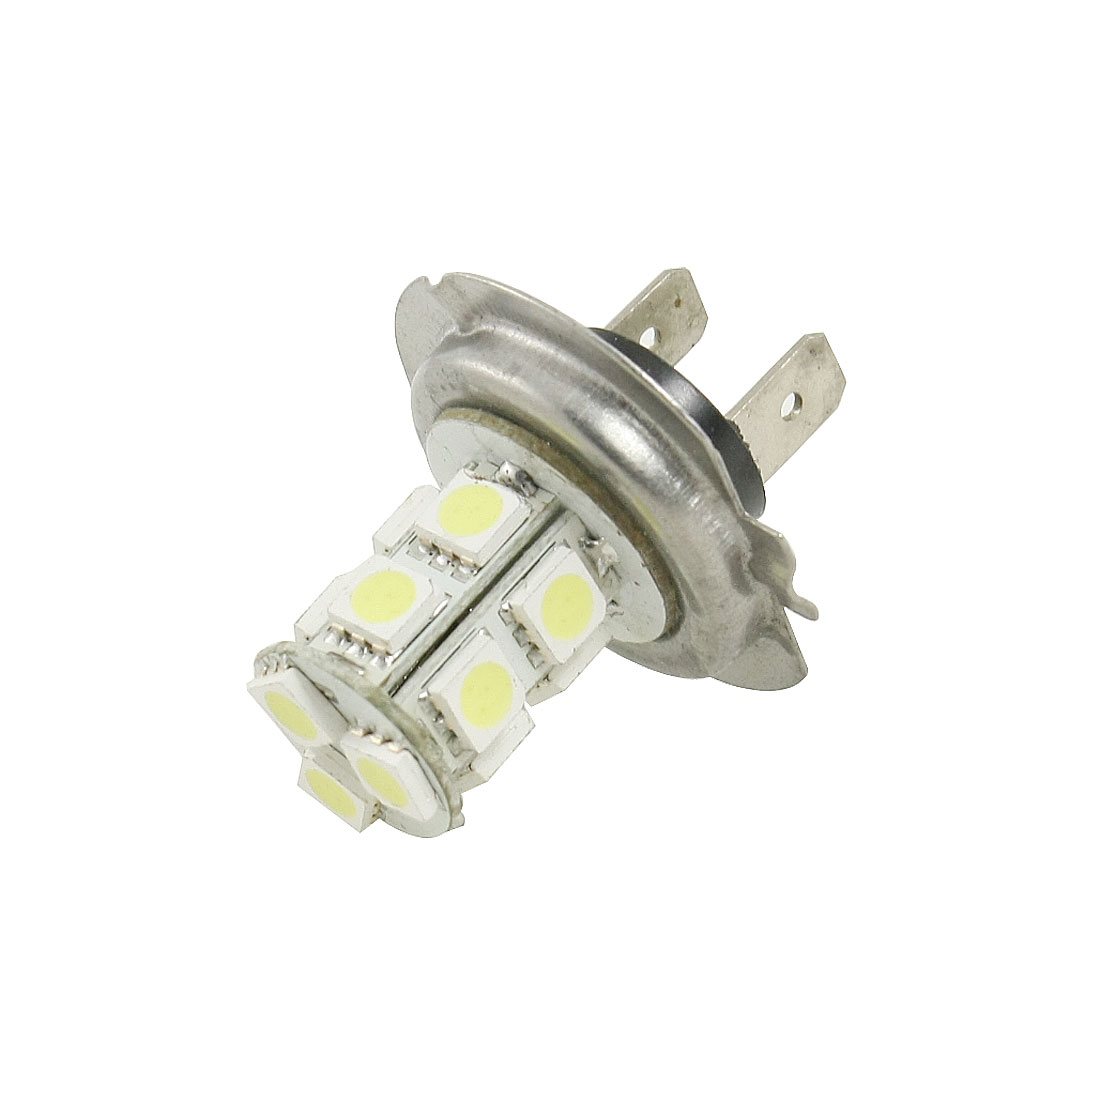 Auto Car 13 LED 5050 SMD H7 White Fog Head Light Lamp Bulb DC 12V